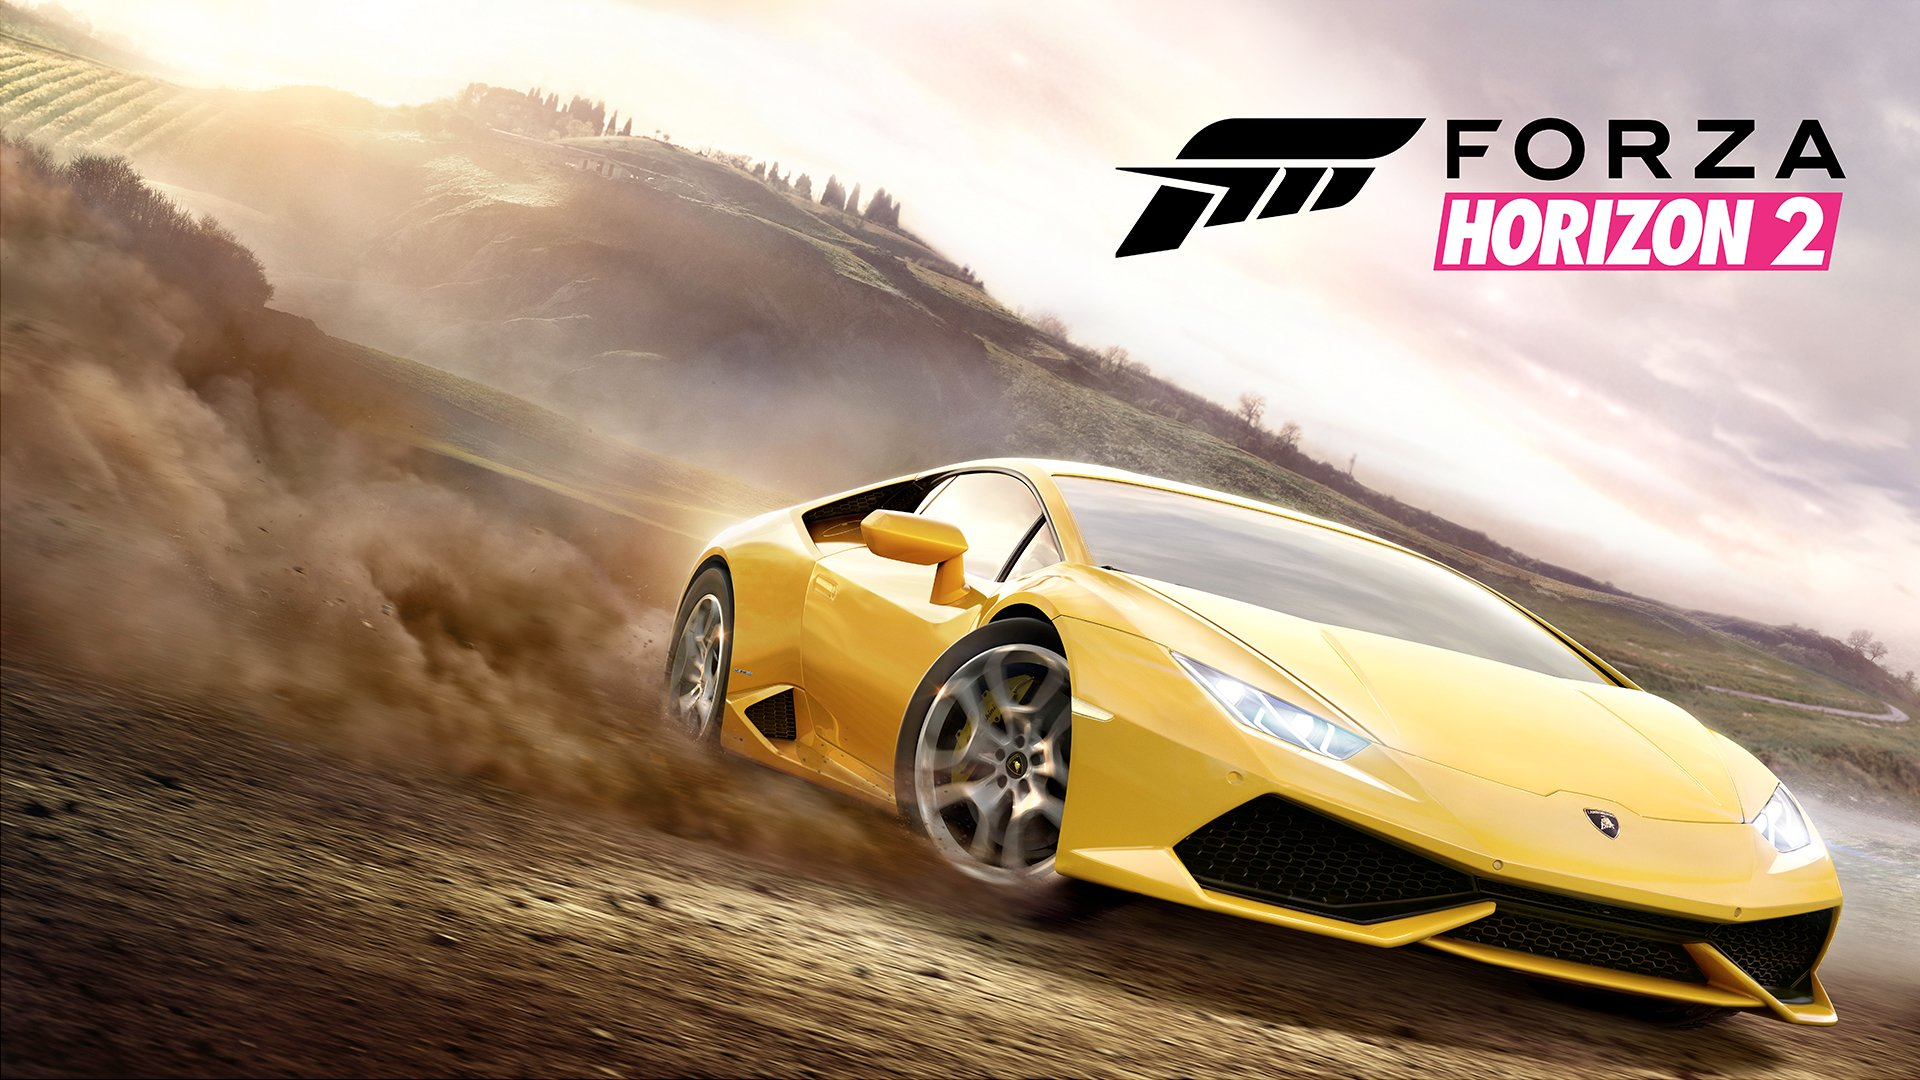 forza horizon 2 xbox one xbox 360 videogames wallpaper. Black Bedroom Furniture Sets. Home Design Ideas